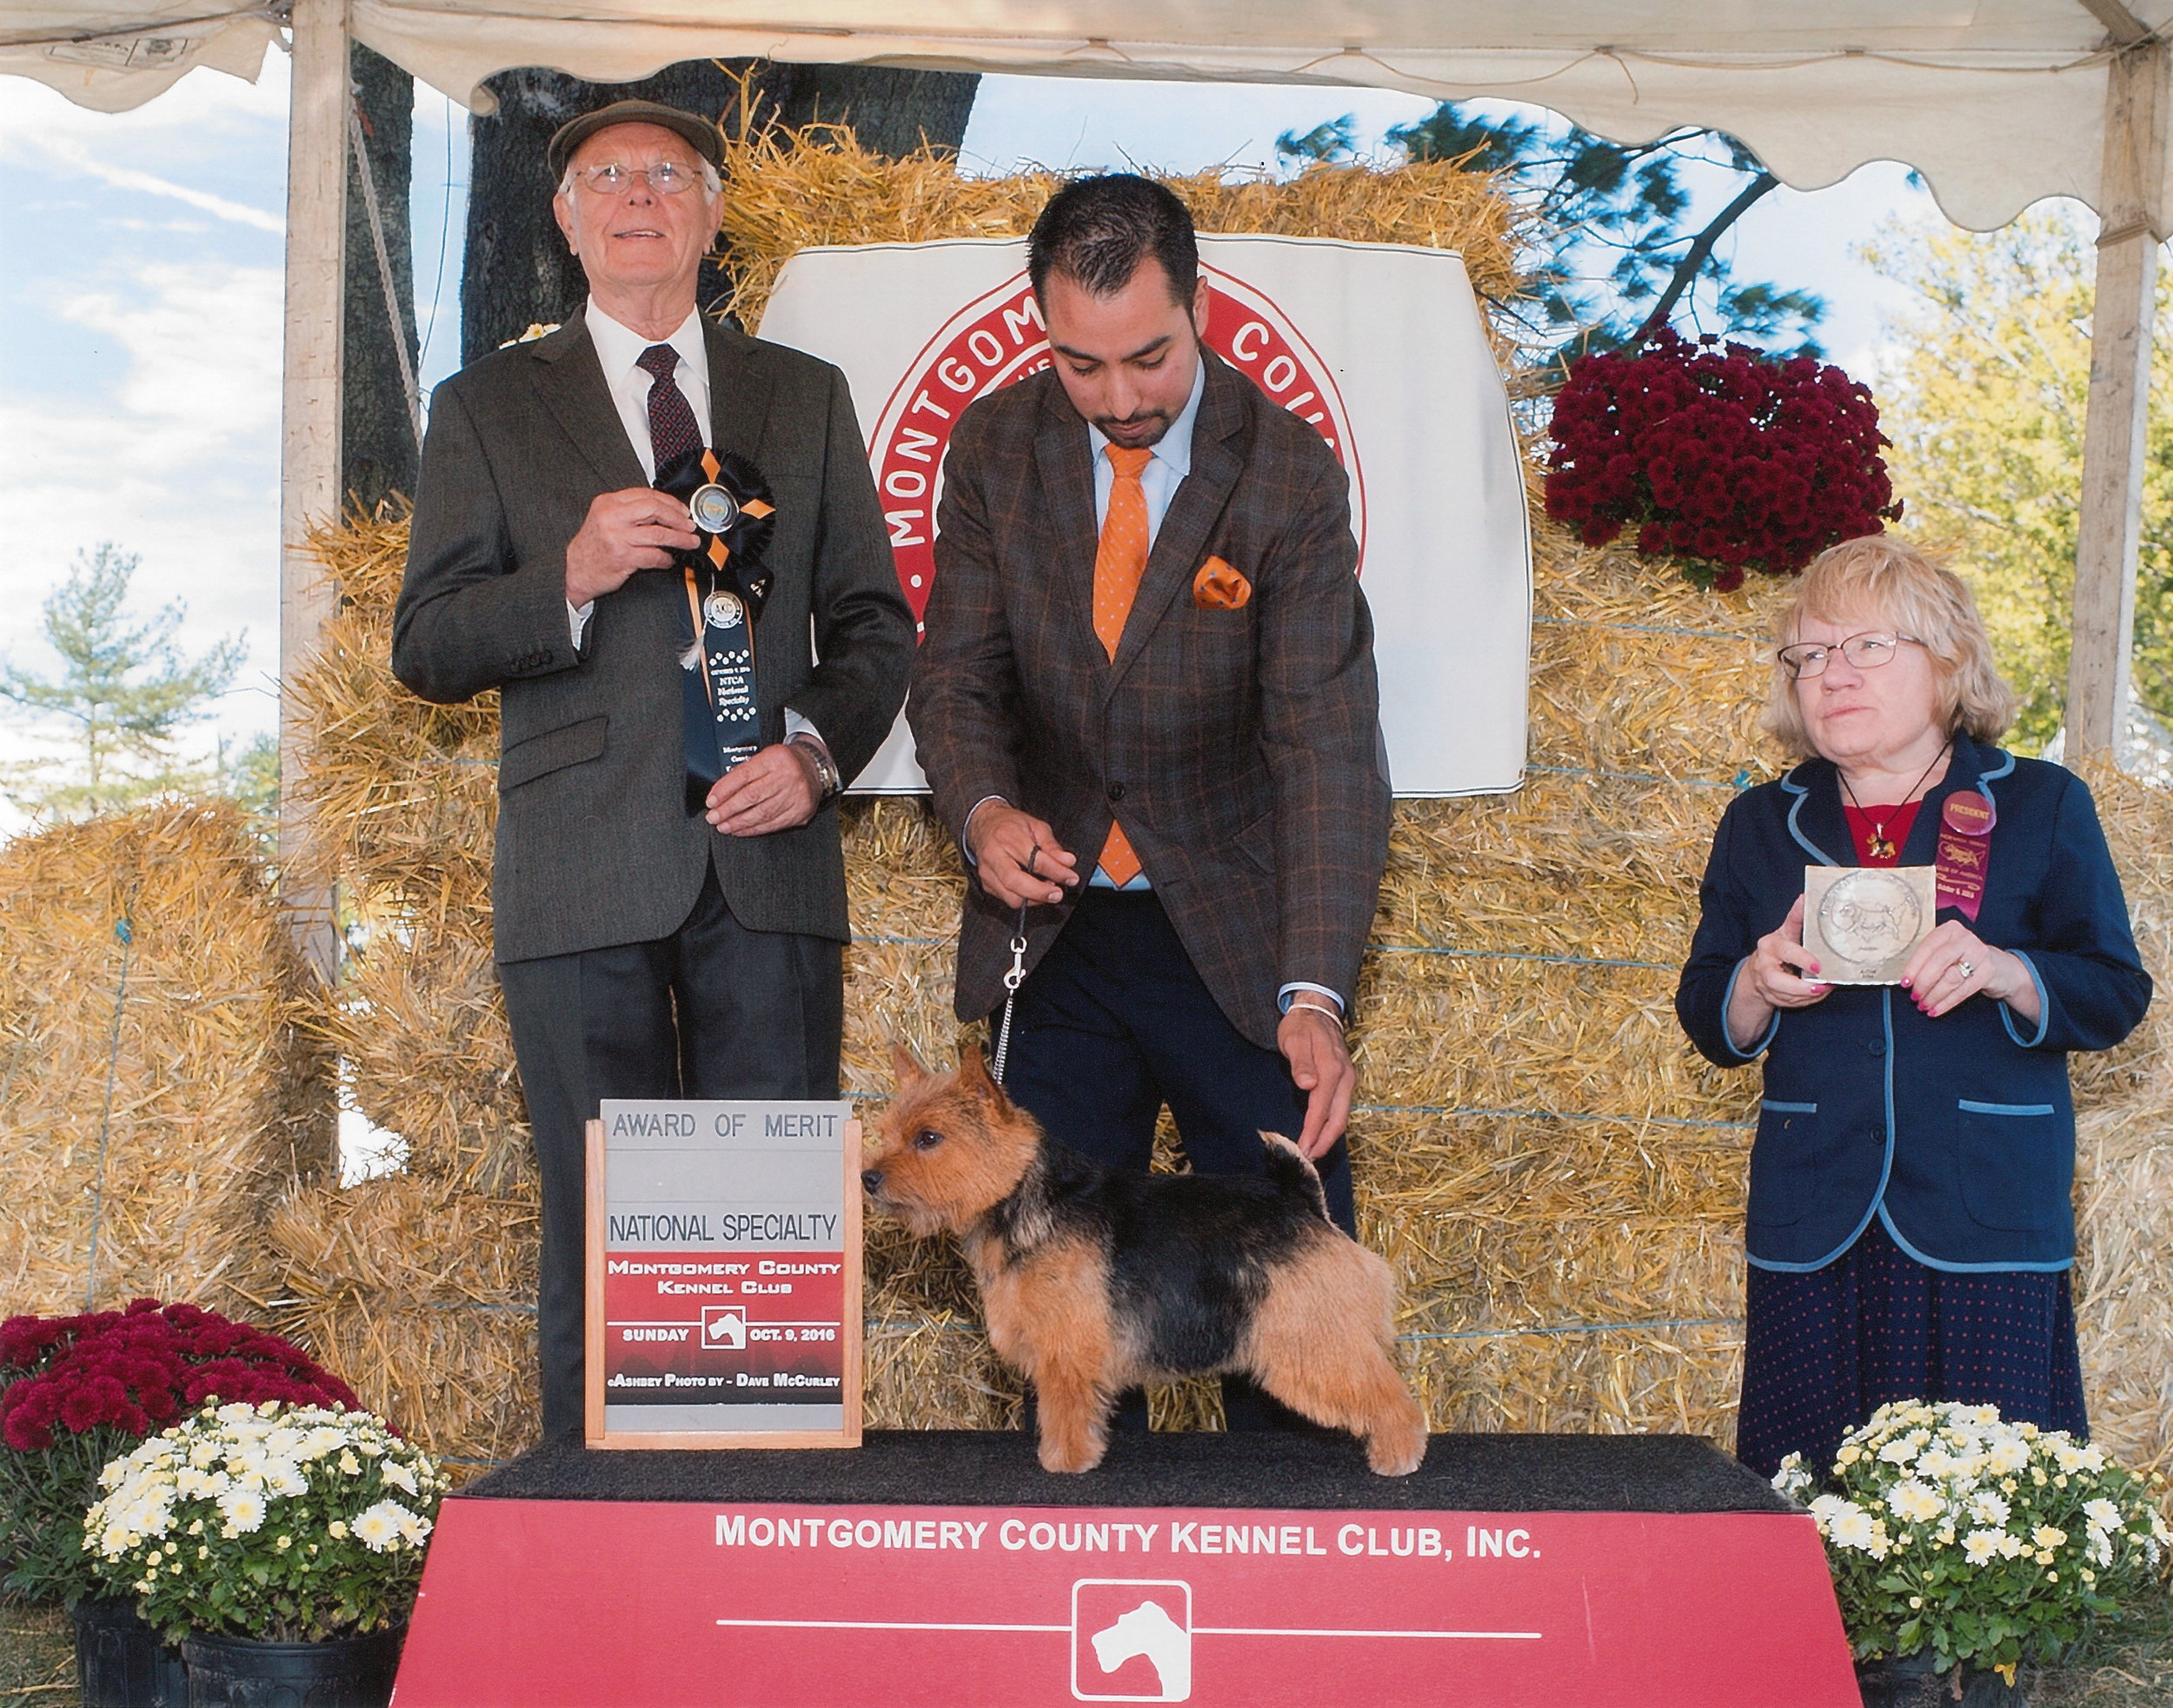 Award of Merit at 15 months old under judge Peter Green at the NTCA National Specialty, October 9, 2016. Handled by Alfonso Escobedo.